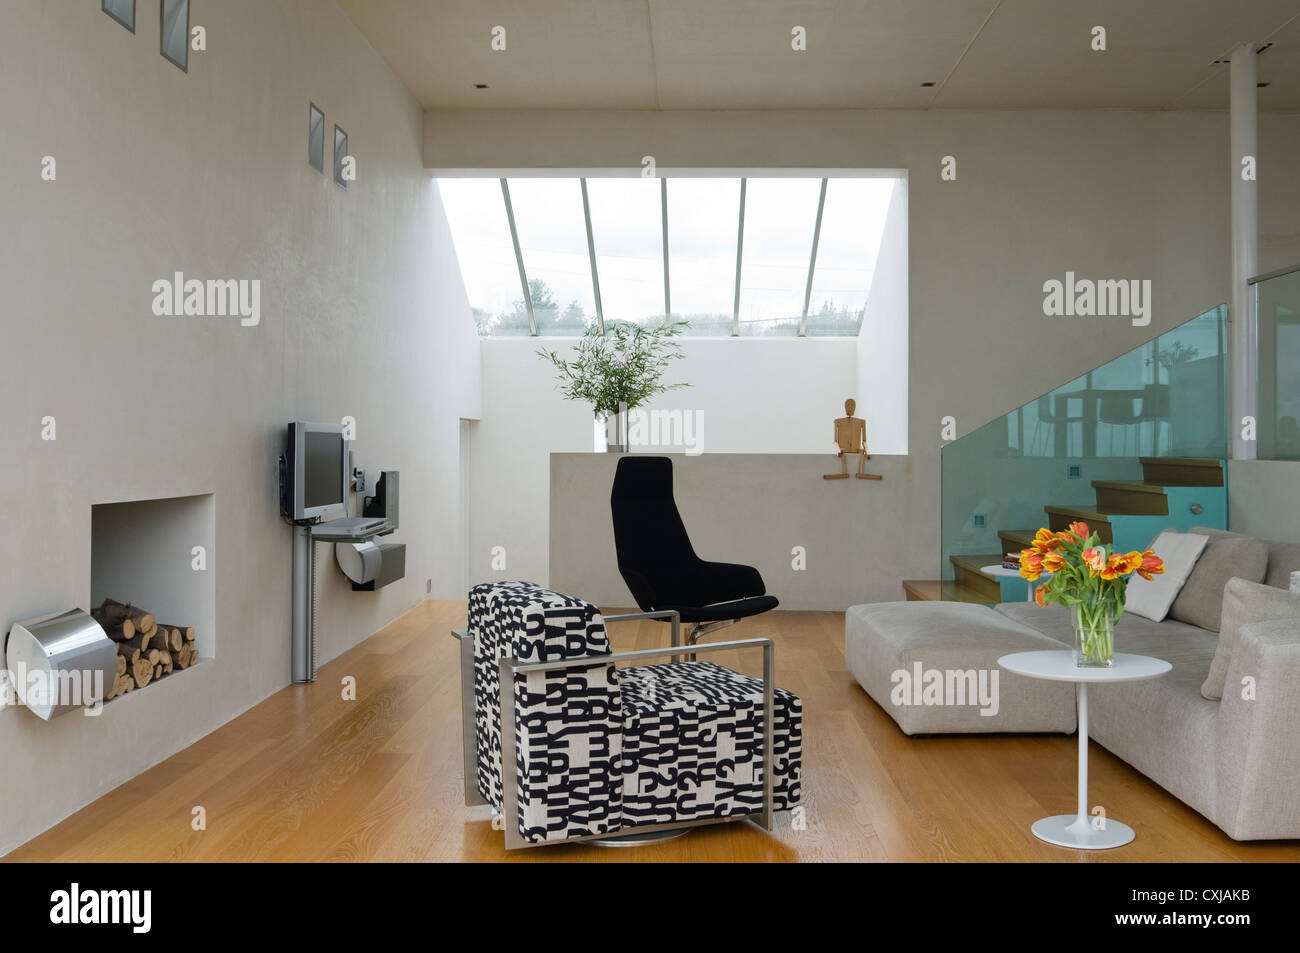 Spacious Open Plan Living Room With Skylight Stock Photo Alamy